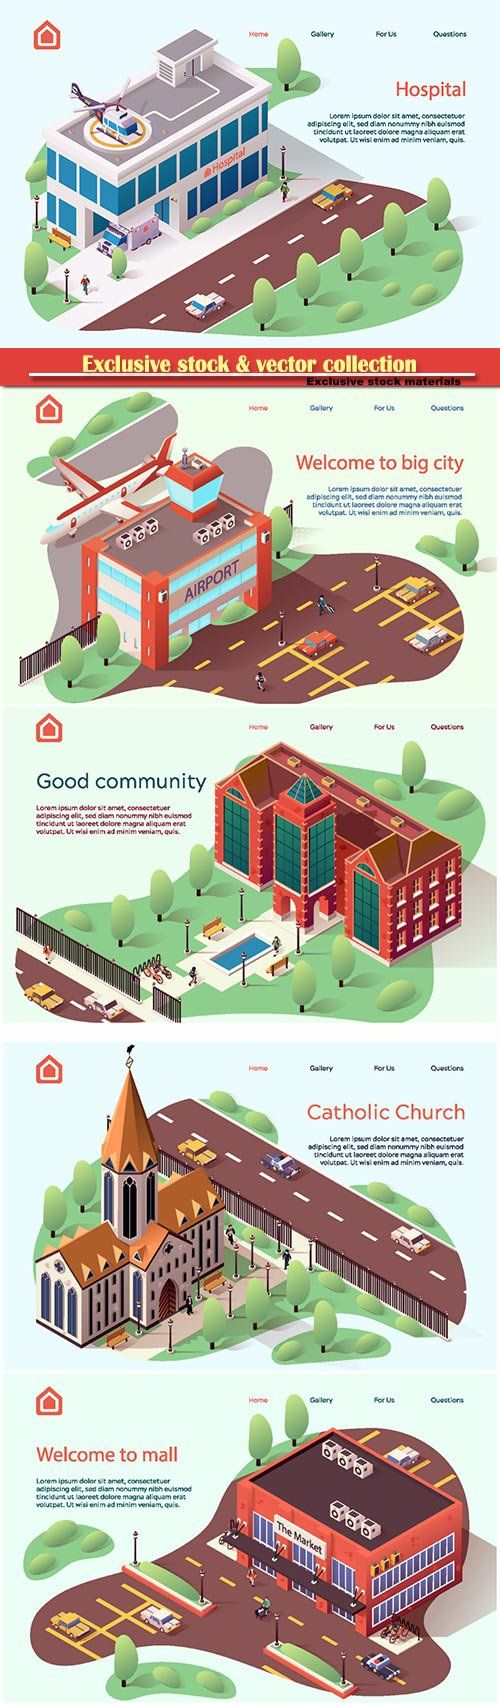 Advertising flyer is written good community cartoon flat, large modern building vector illustration